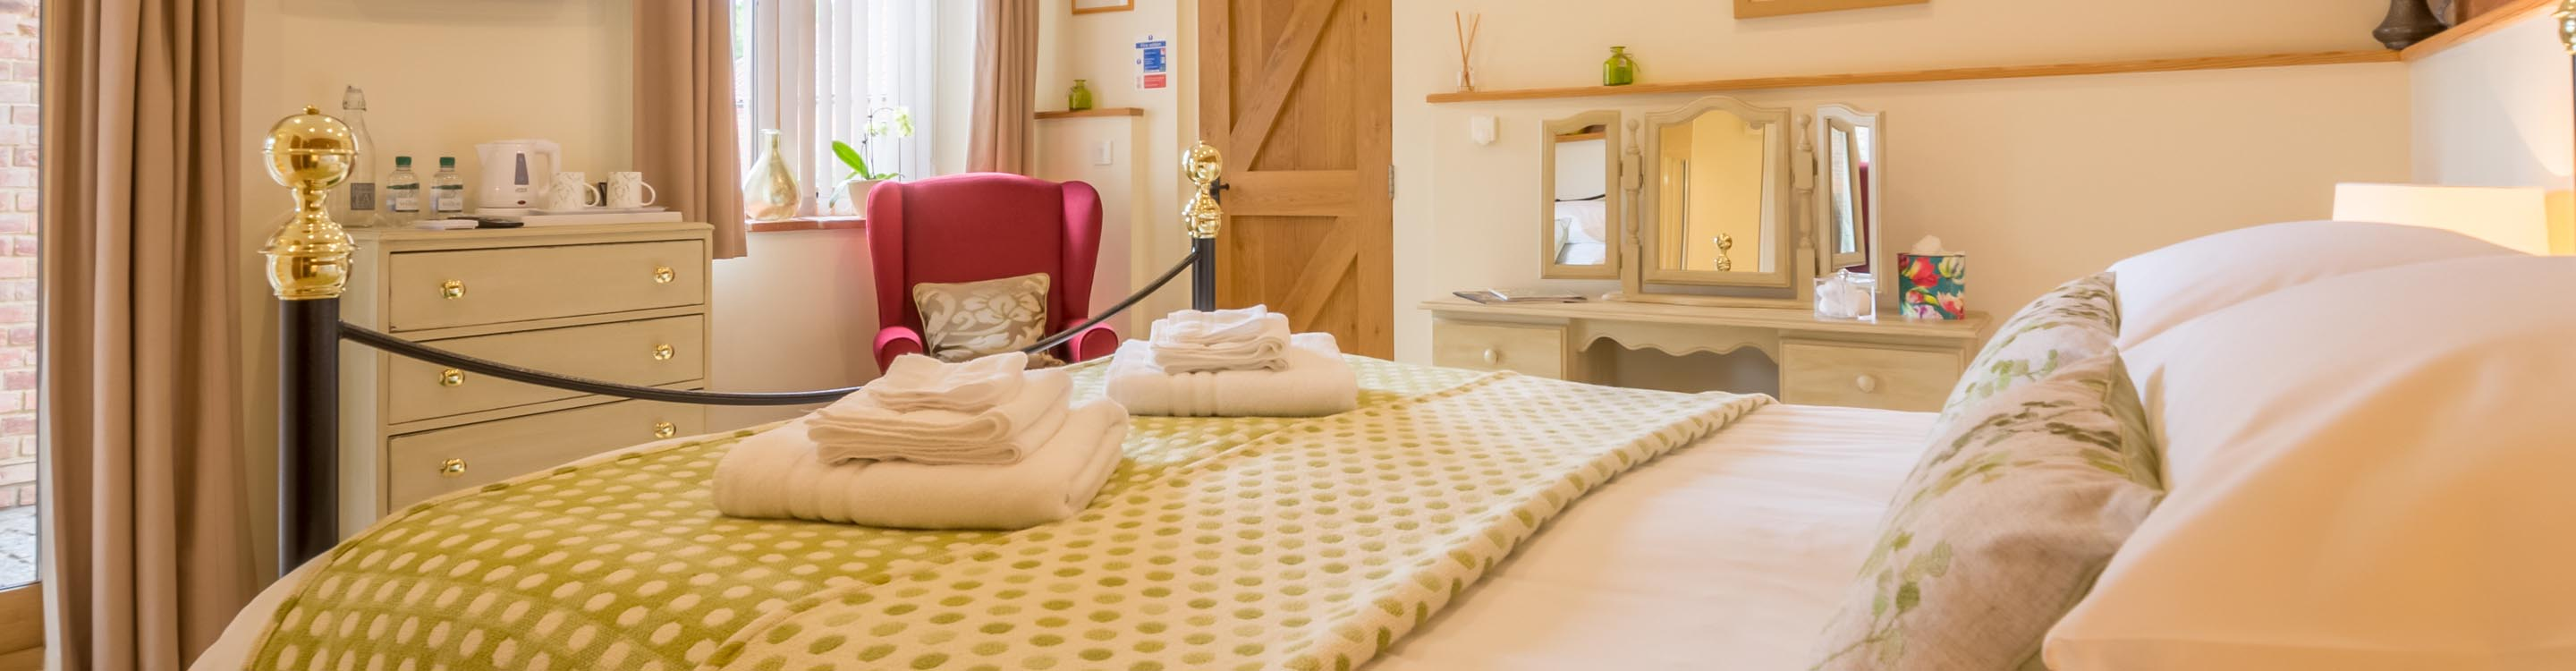 Self-Catering and Luxury Bed & Breakfast Accommodation in Norfolk